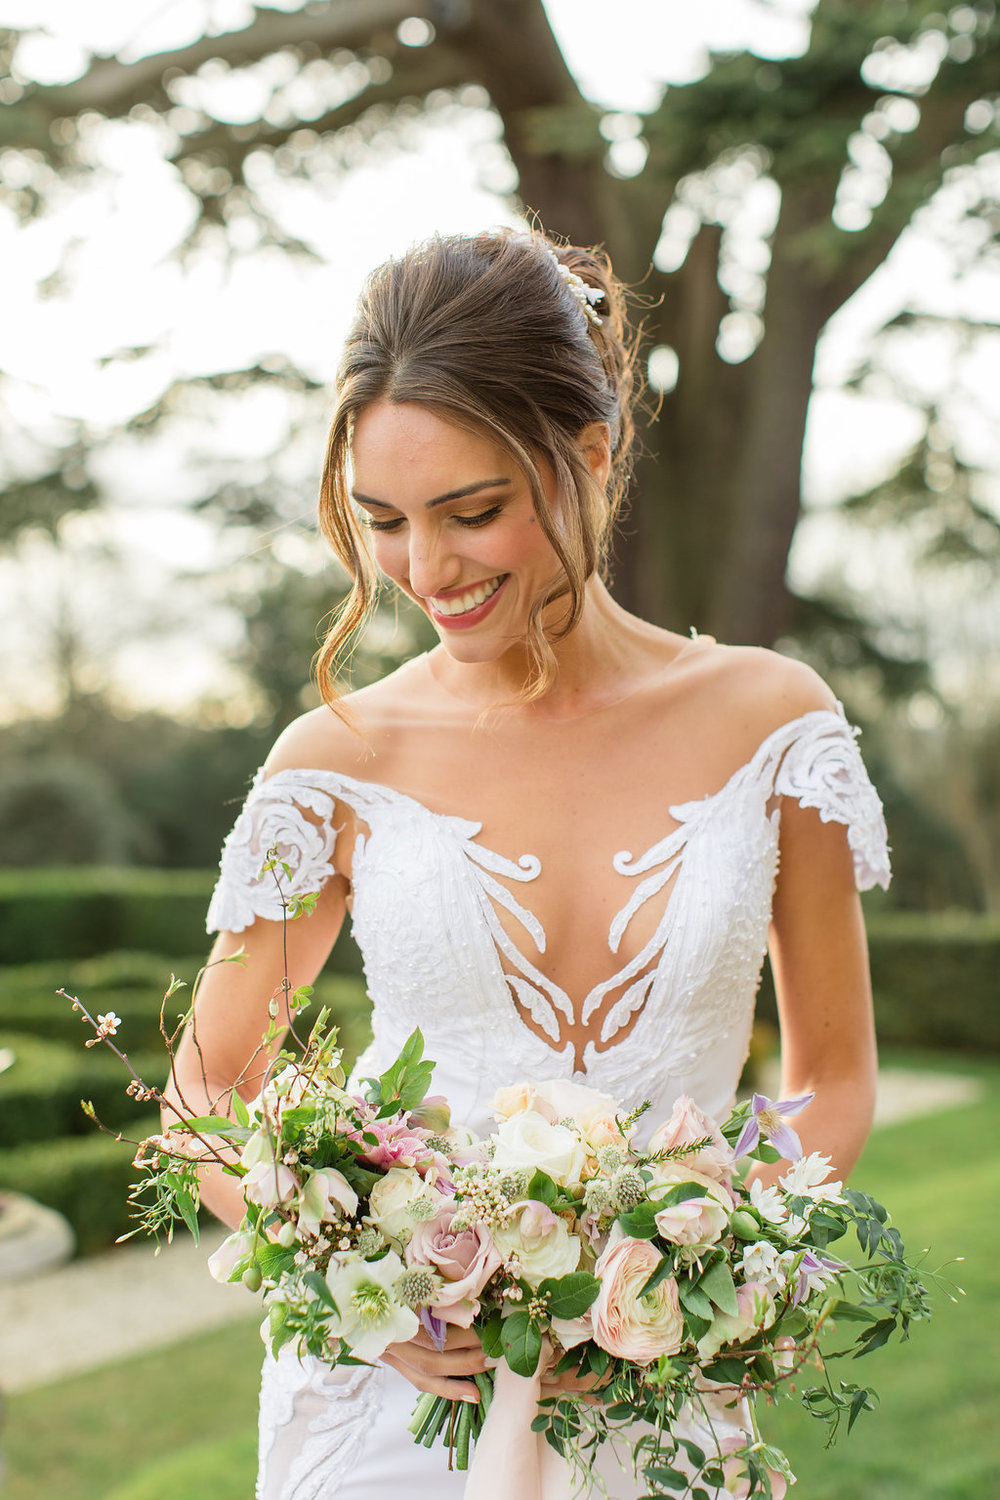 The Timeless Stylist-Elegant and Romantic Wedding Styling-Timeless Bride and Bouquet